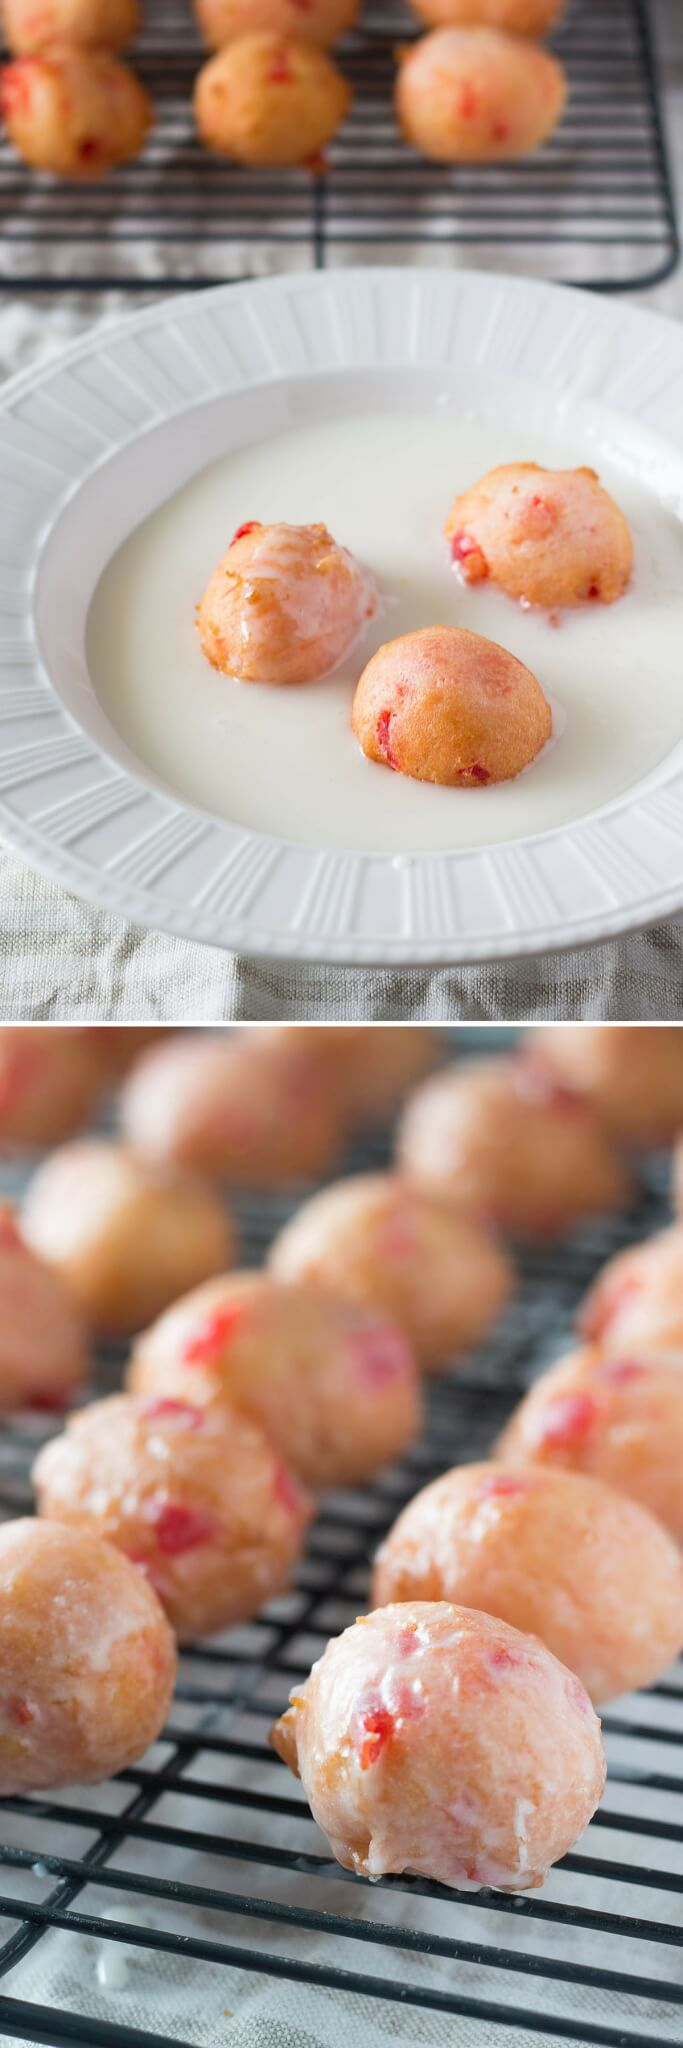 Cherry Doughnut Holes made from scratch! Delicious cake doughnut texture, perfectly pink in color & dripped in sweet glaze. You NEED to make these!